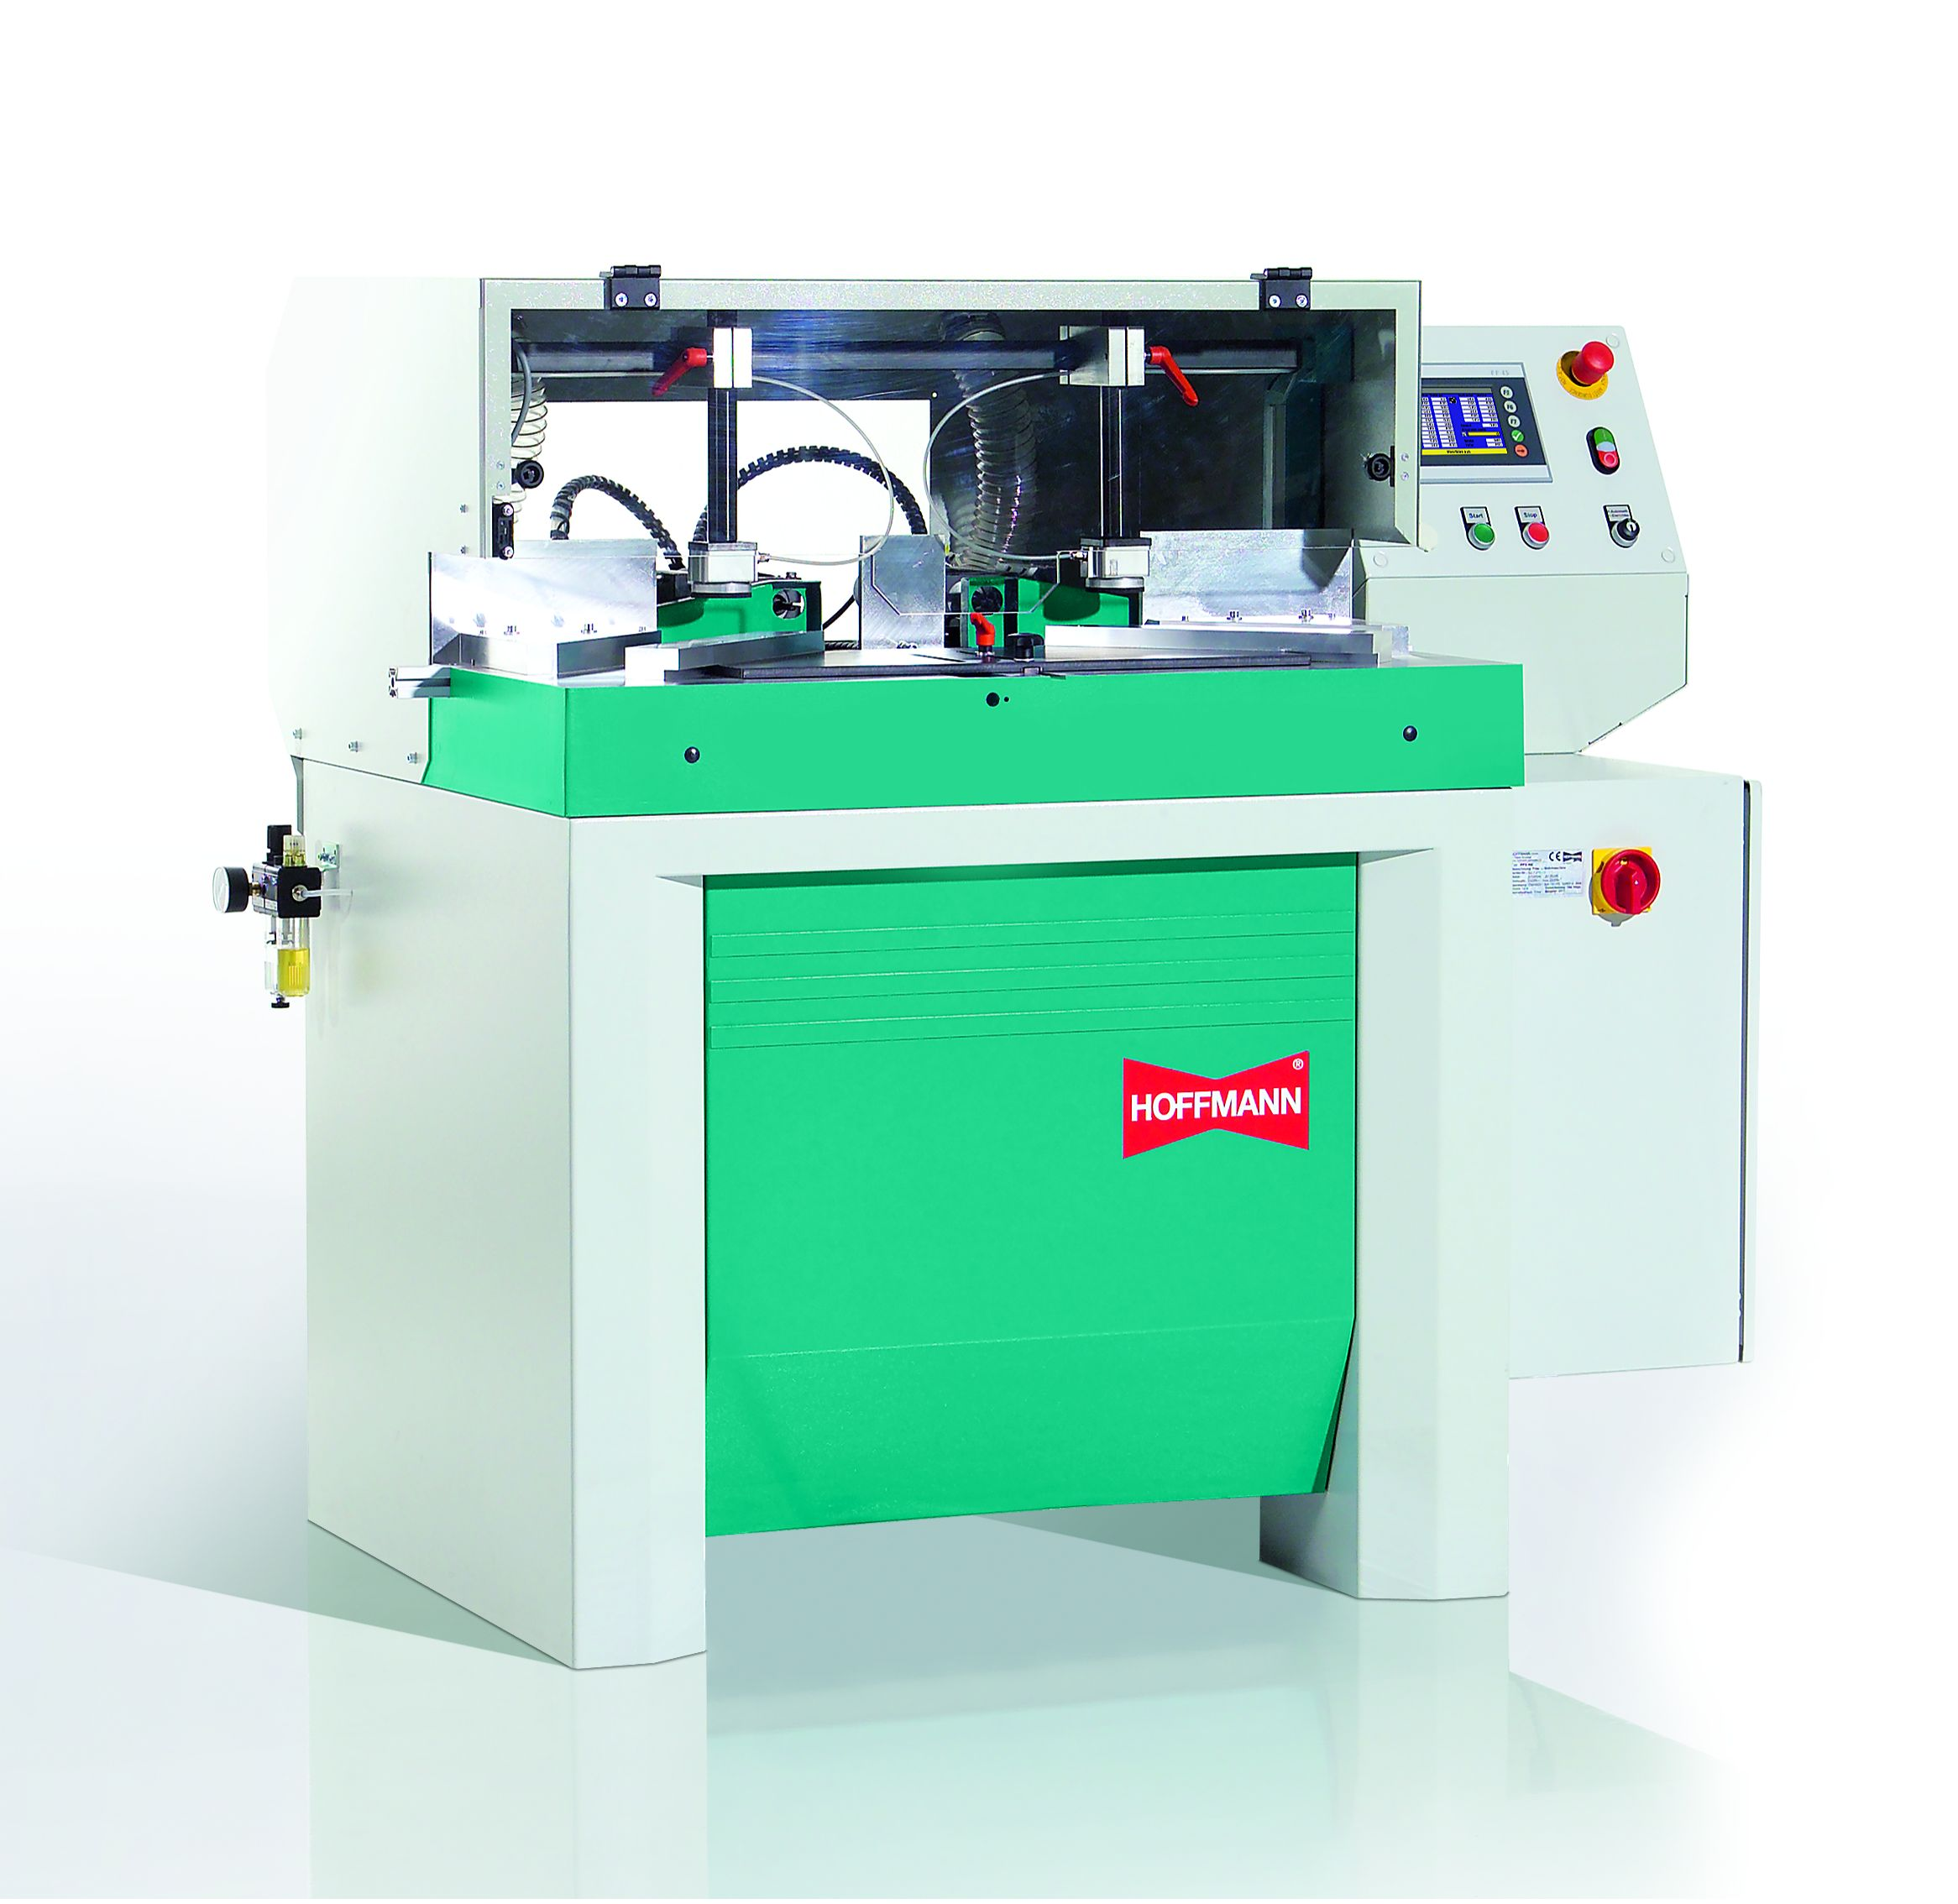 Groove milling and drilling machine